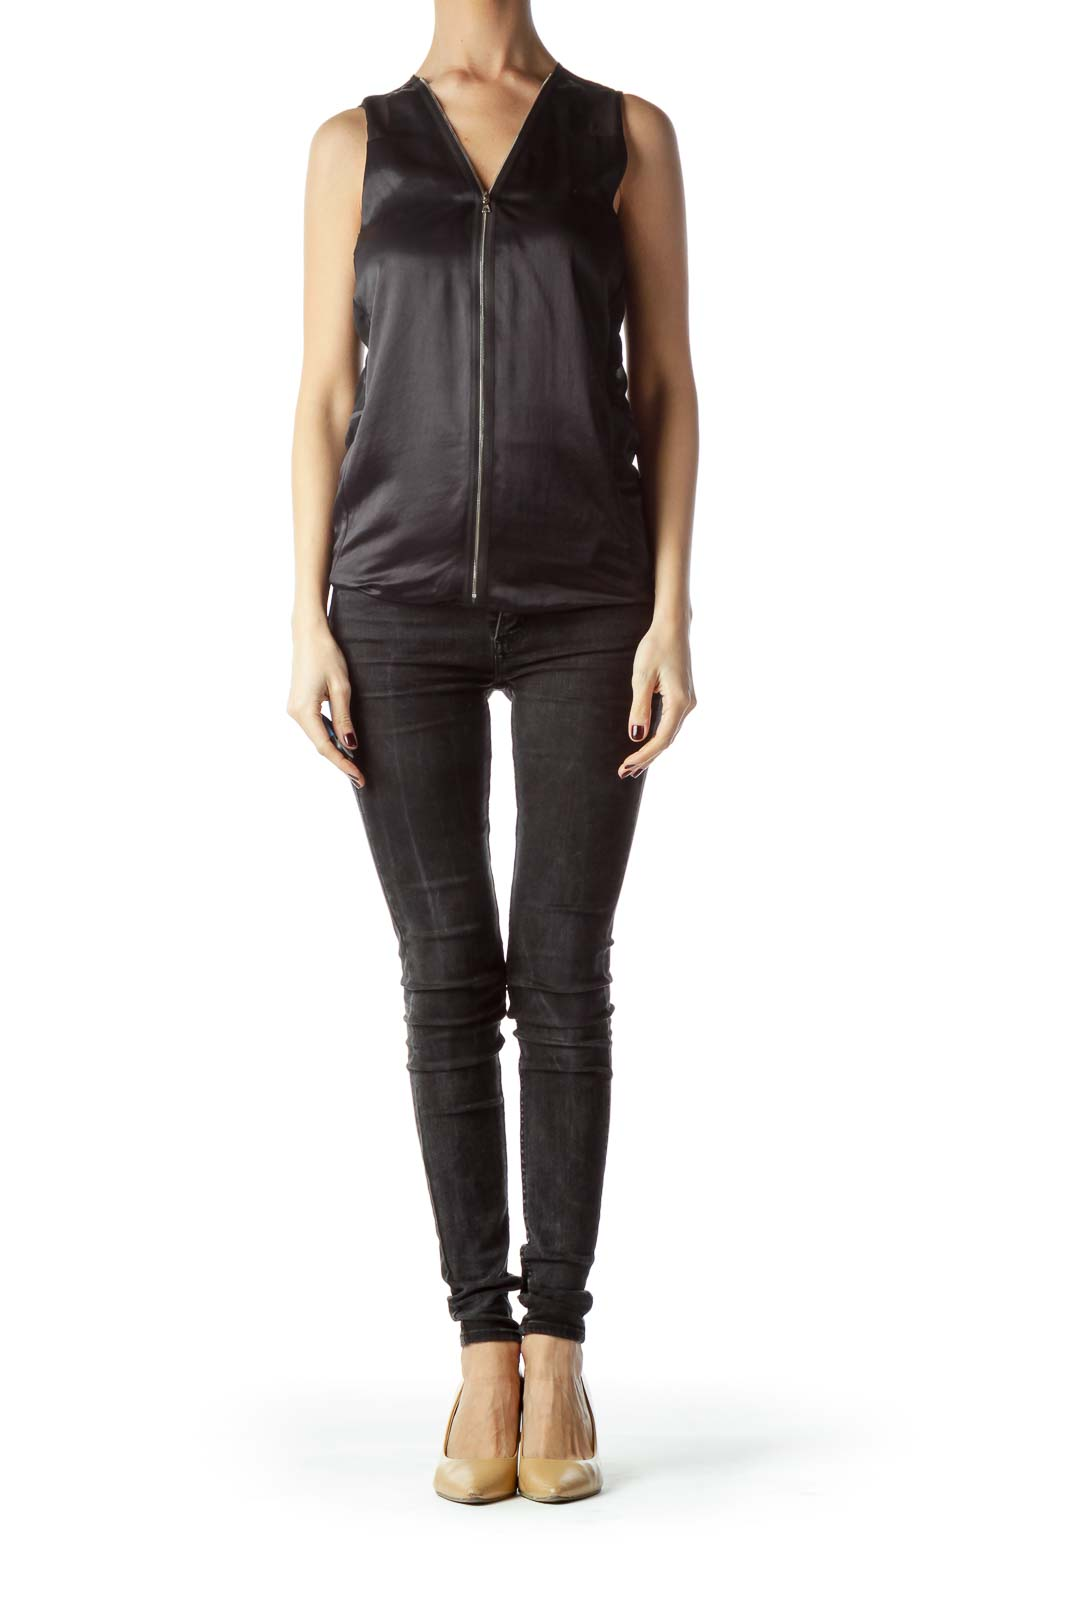 Black Zippered Up Front Sleeveless Top